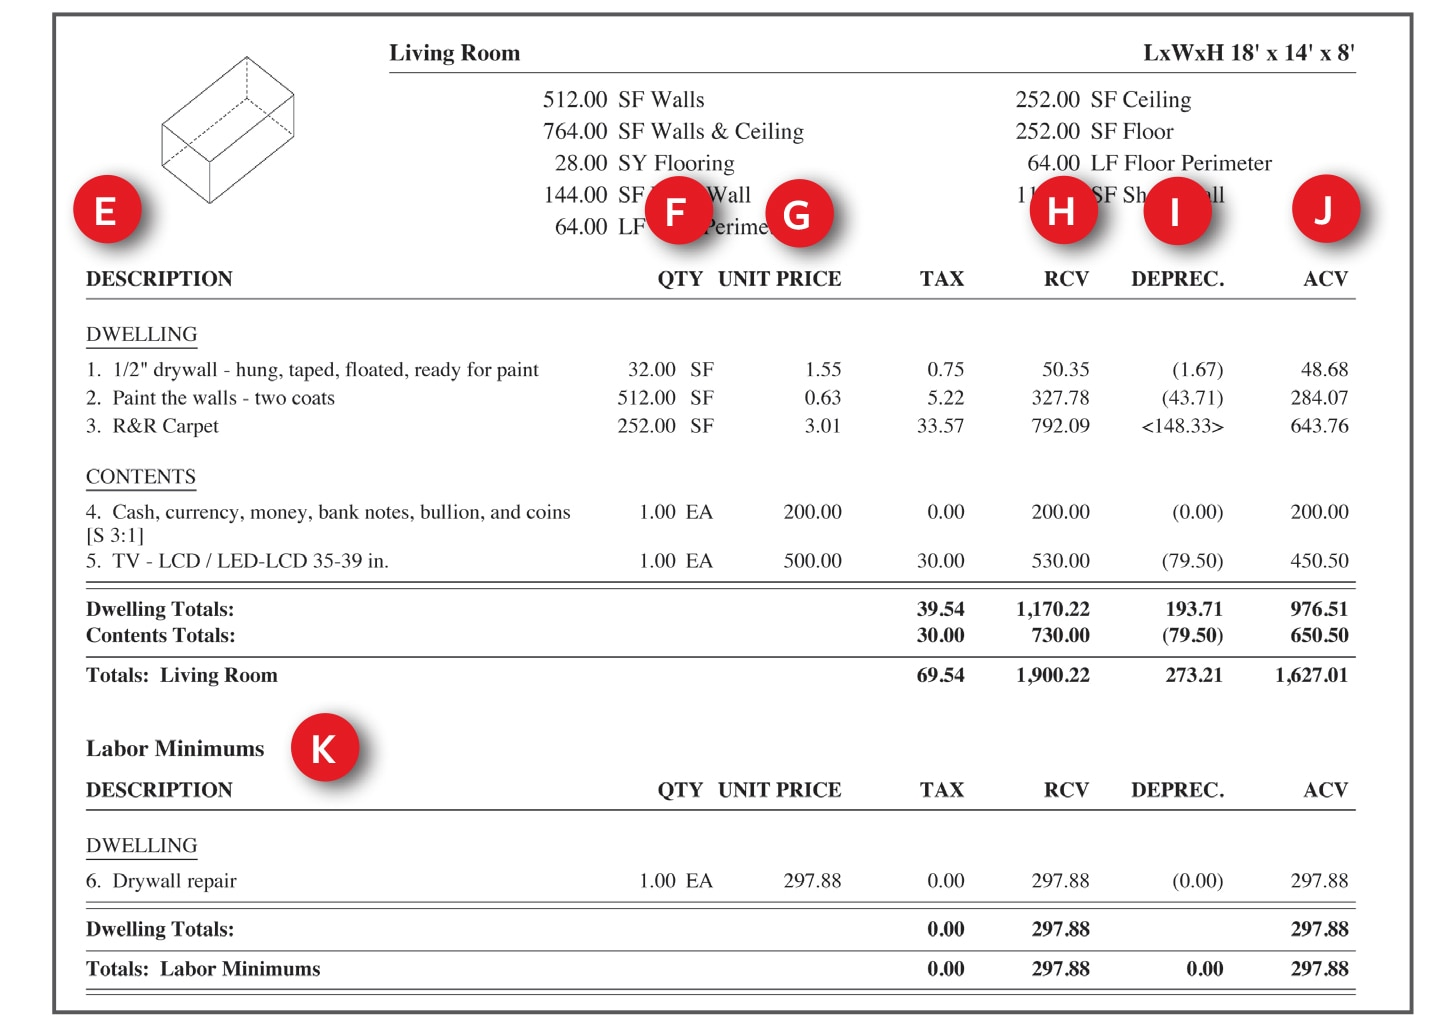 Calculating Roof Depreciation In An Insurance Claim The Voss Law